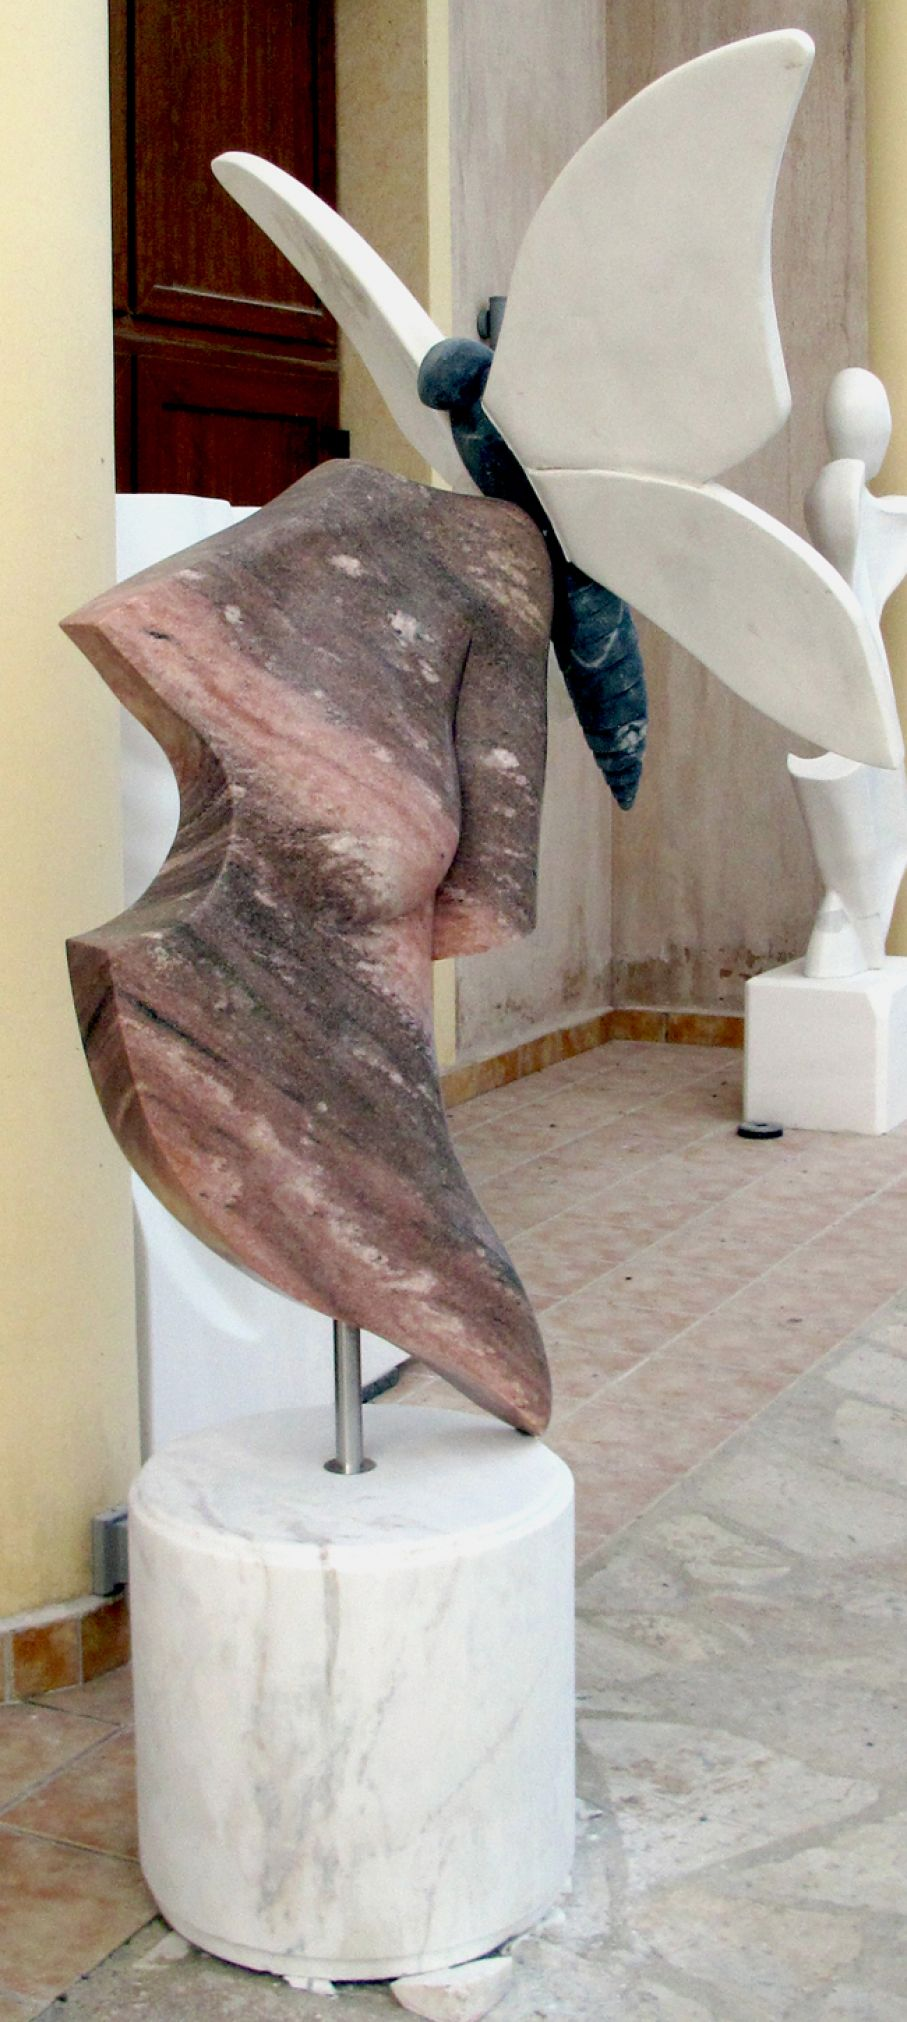 "Original marble sculpture of  John Bizas, created within Myrό Antiques House premises, in Souroti, Thessaloniki, GREECE, as part of the Greek Marble Initiative, bearing the title ""Farfalla"". Dimensions: 200 X 90 X 105 cm (with its base)."